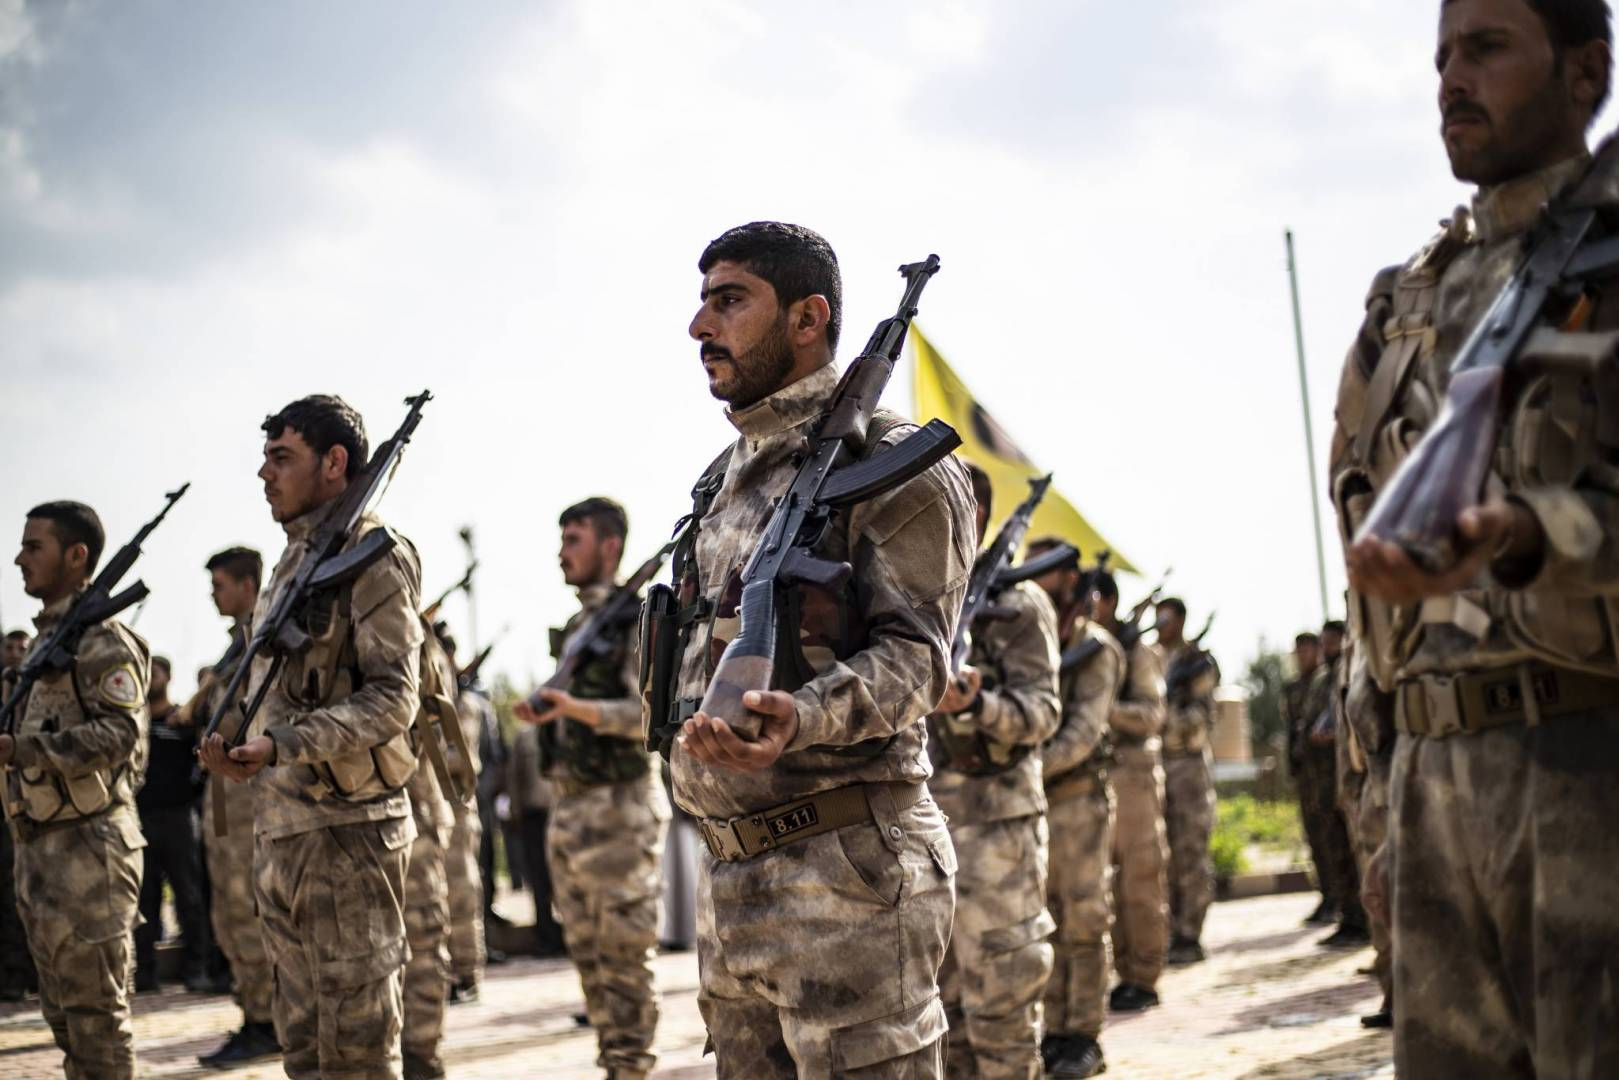 SDF fighters in their colleague's funeral, who has been killed in the countryside of Deir Ez-Zor – April, 2019 (AFP)